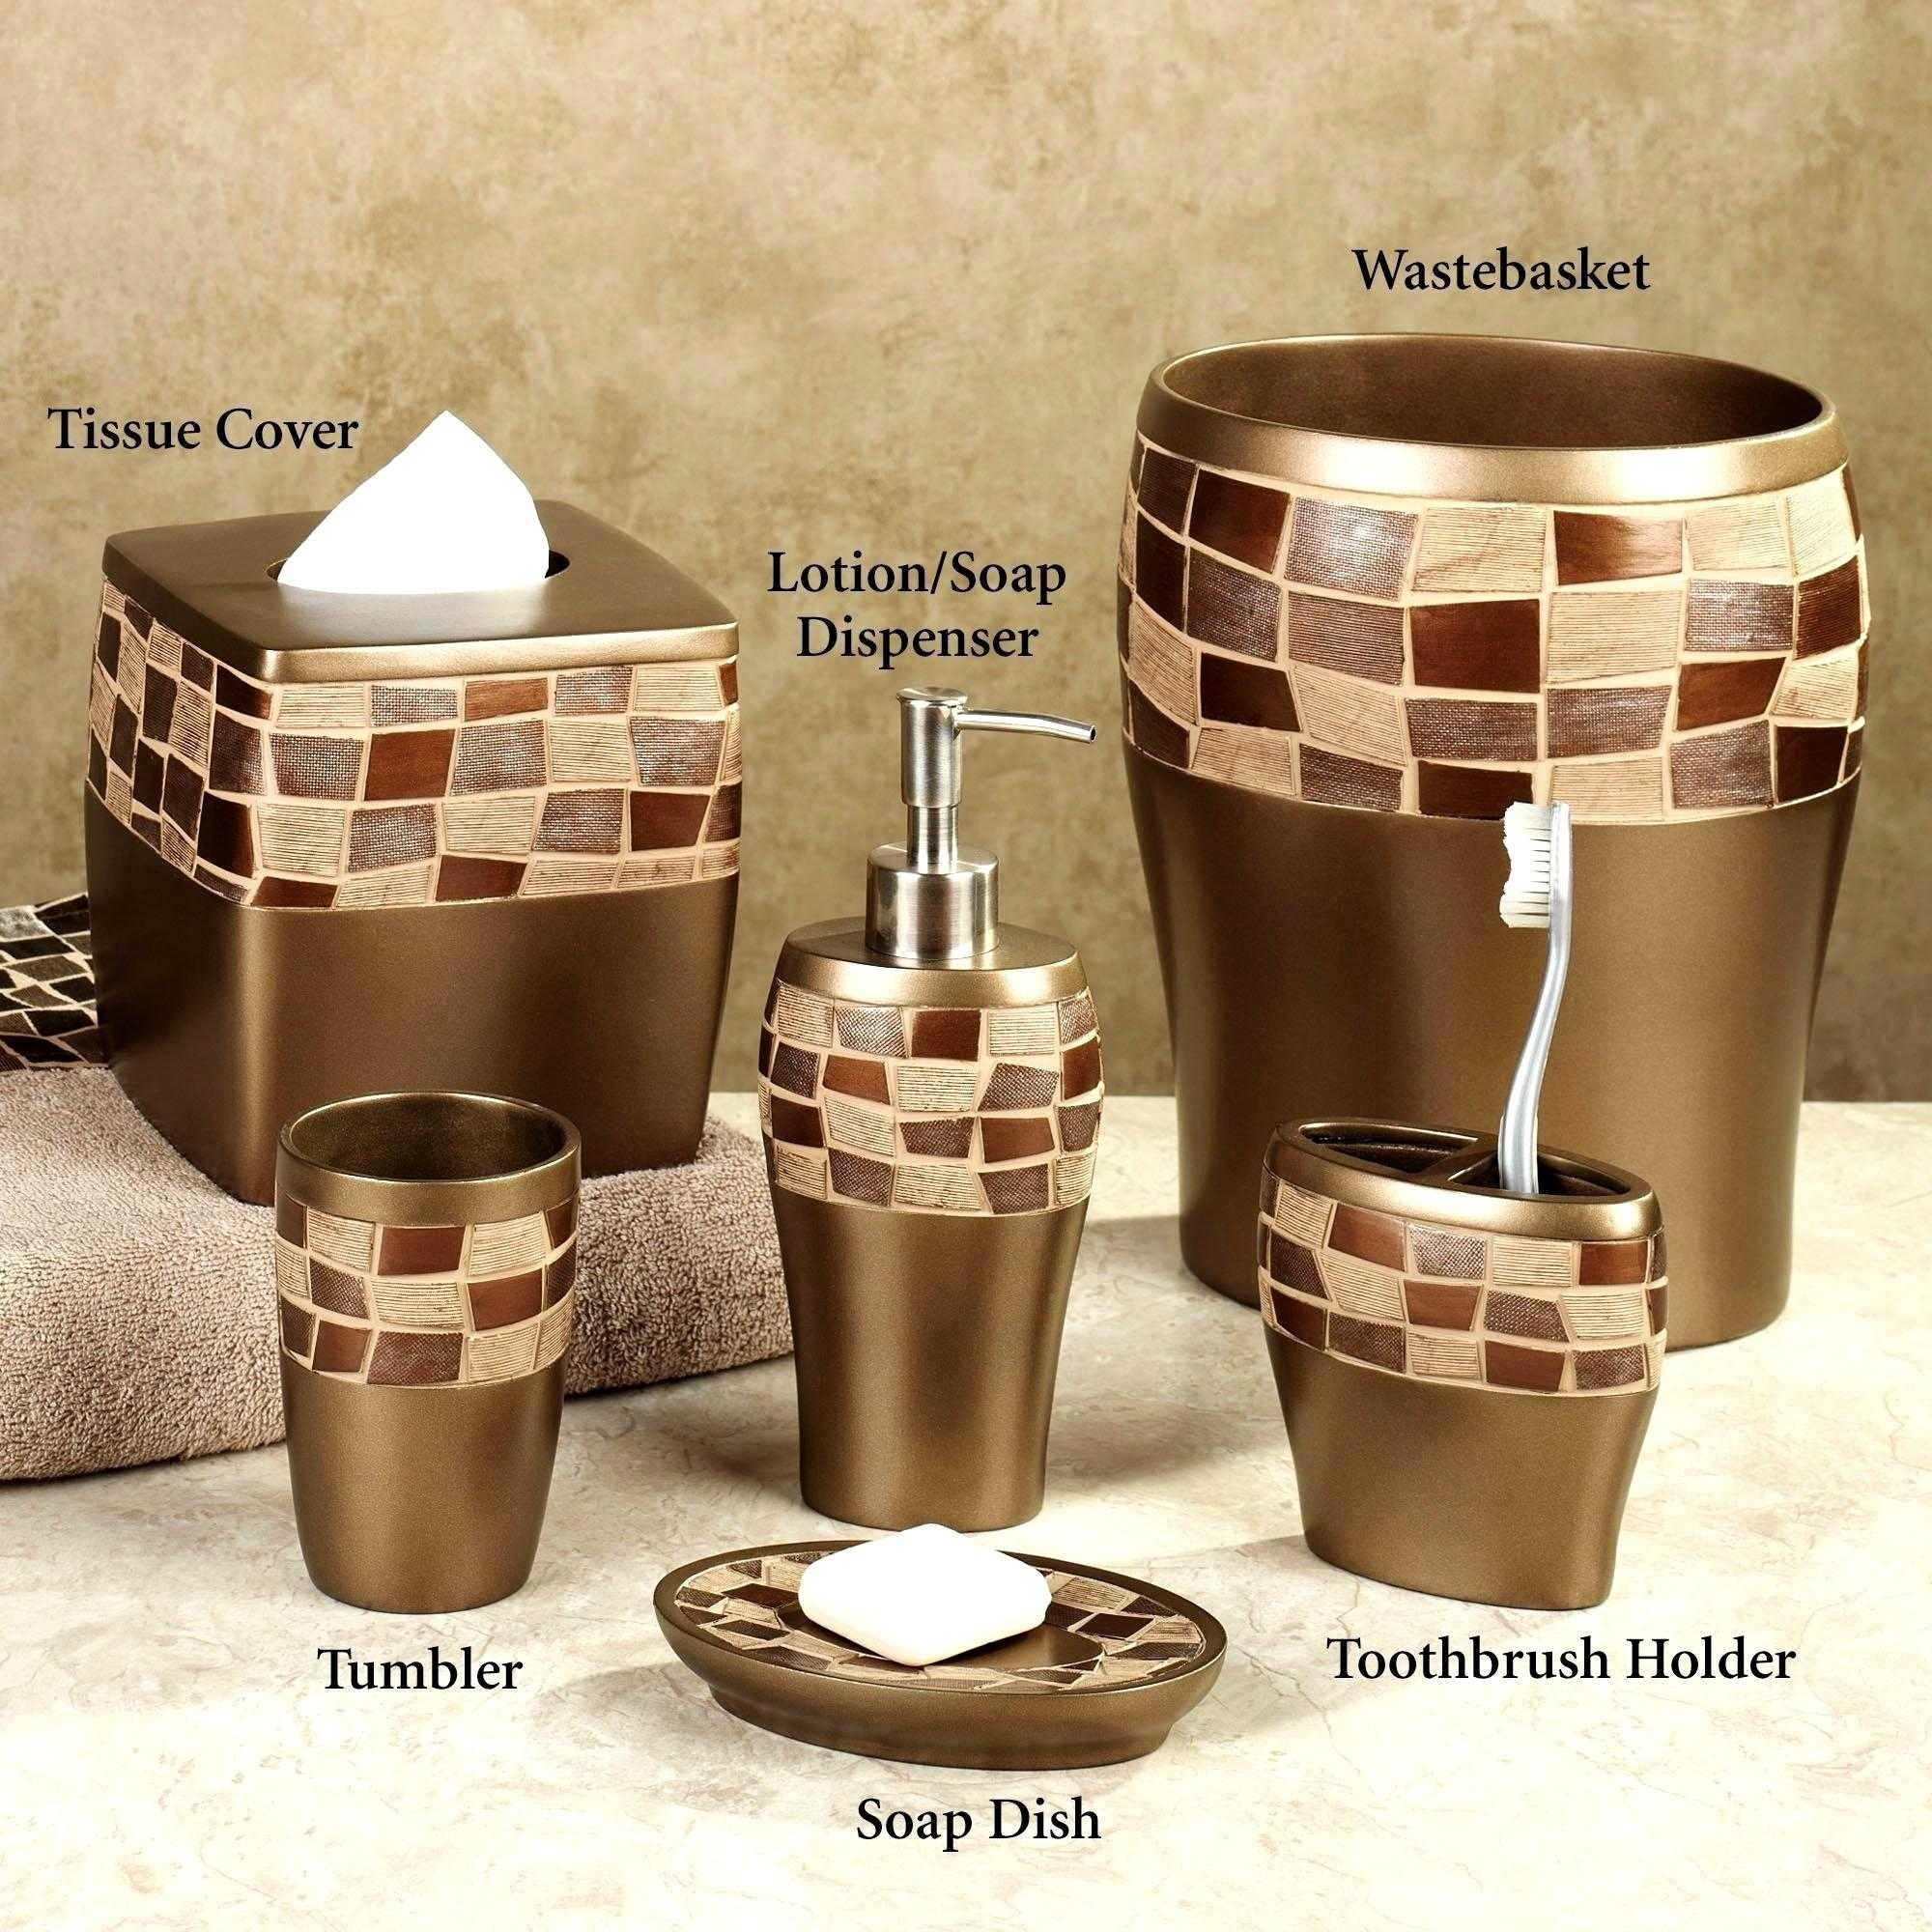 Bathroom Decor Sets latest news on bathroom decor sets.  adorablebathroomvanityaccessoriessetideasenchantingbathroom FMLWXGL